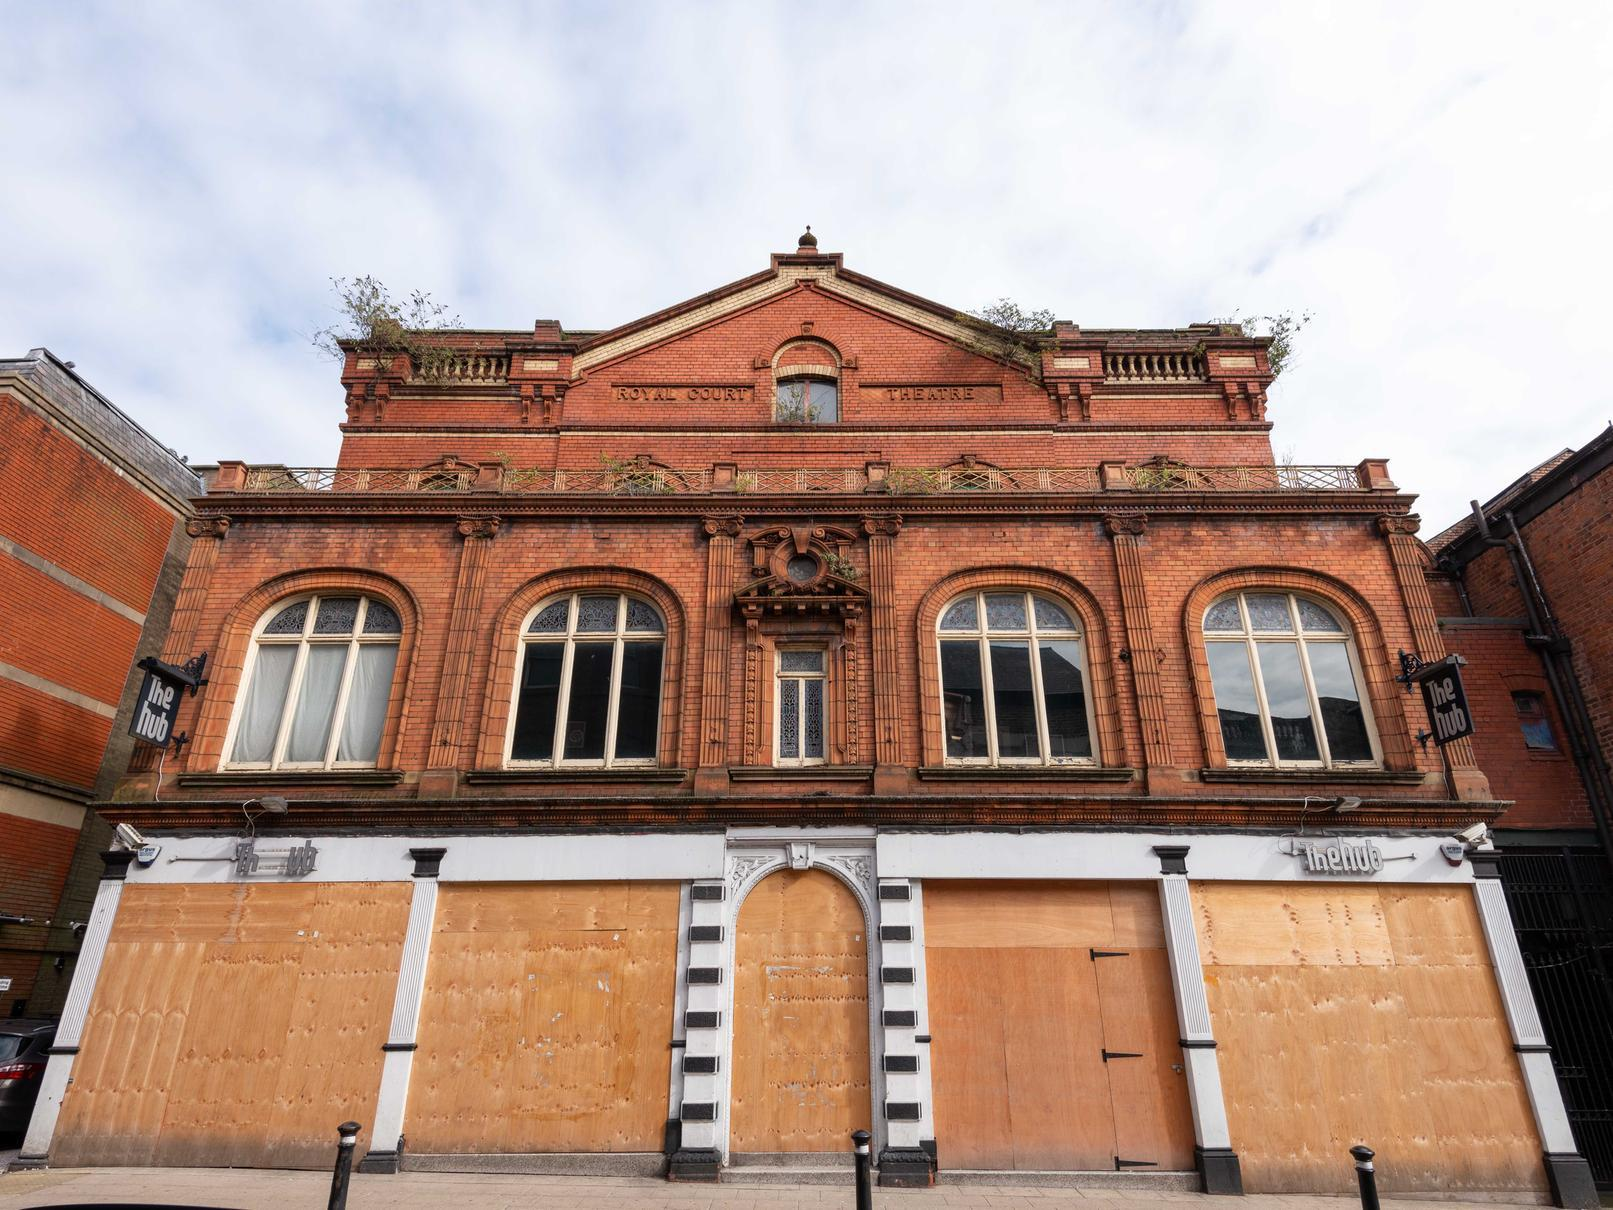 Revival of historic Wigan theatre hits Government jackpot